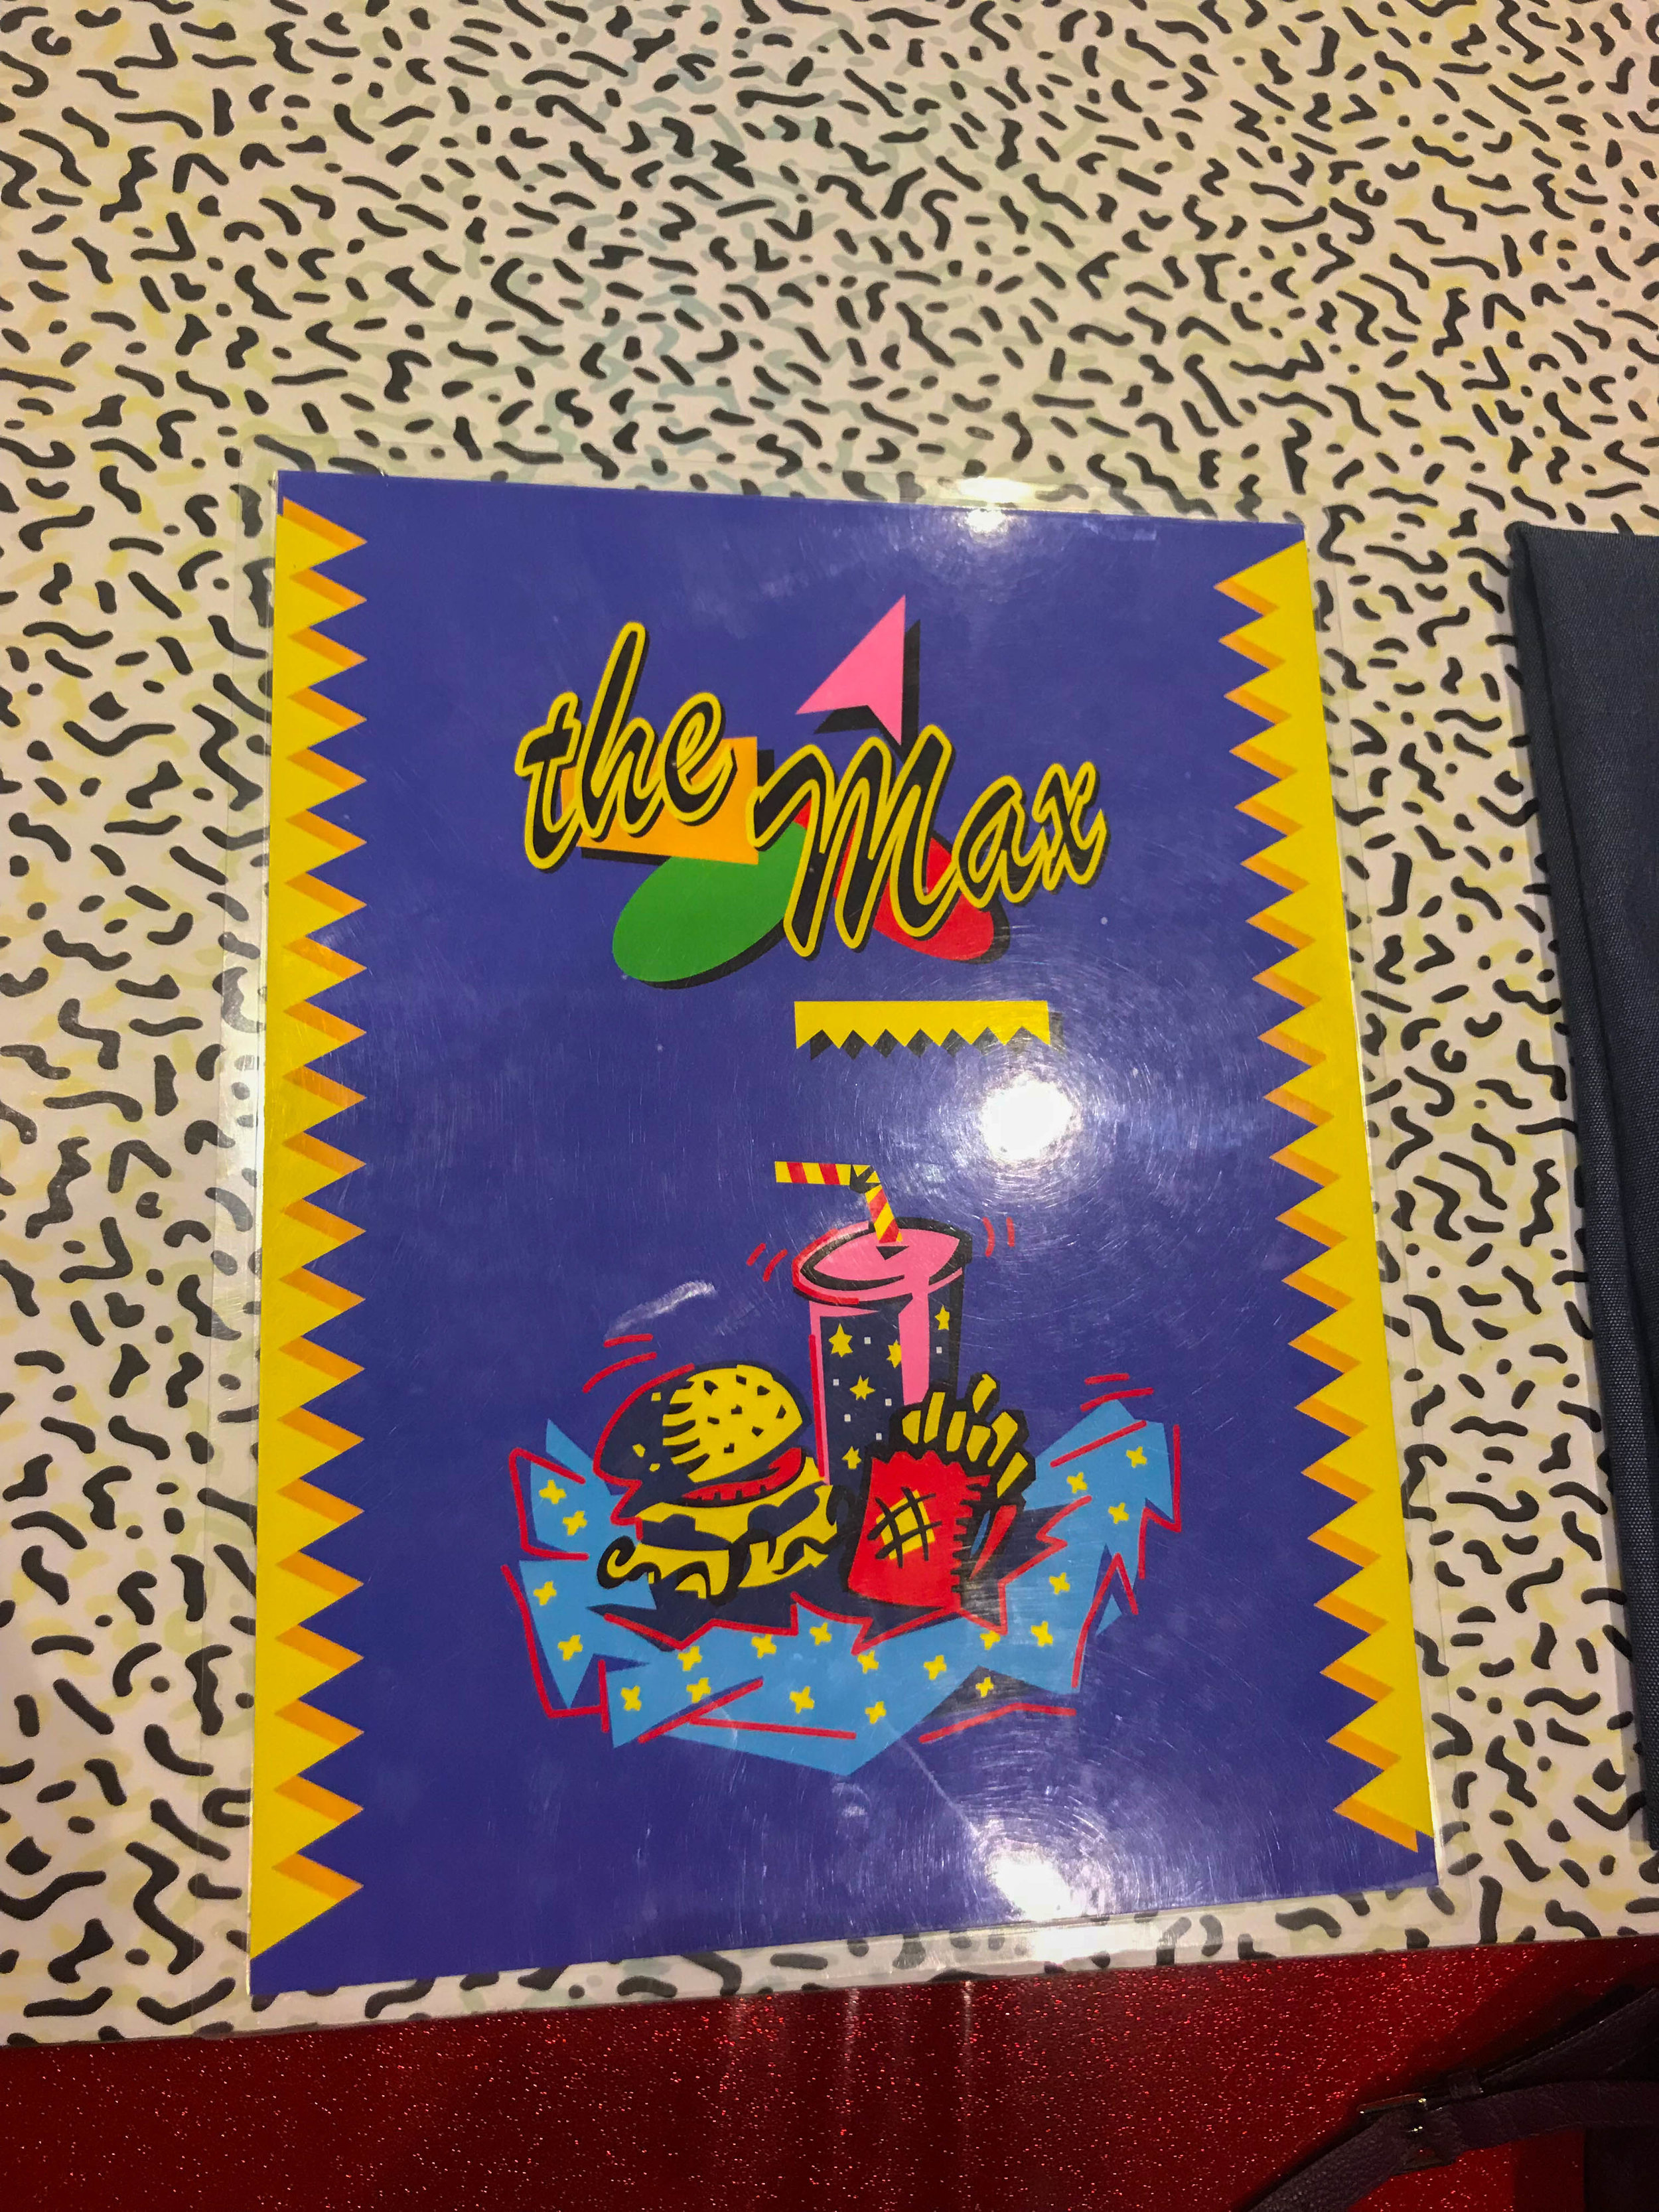 Saved By the Max - Saved by the Bell Pop-up Menu